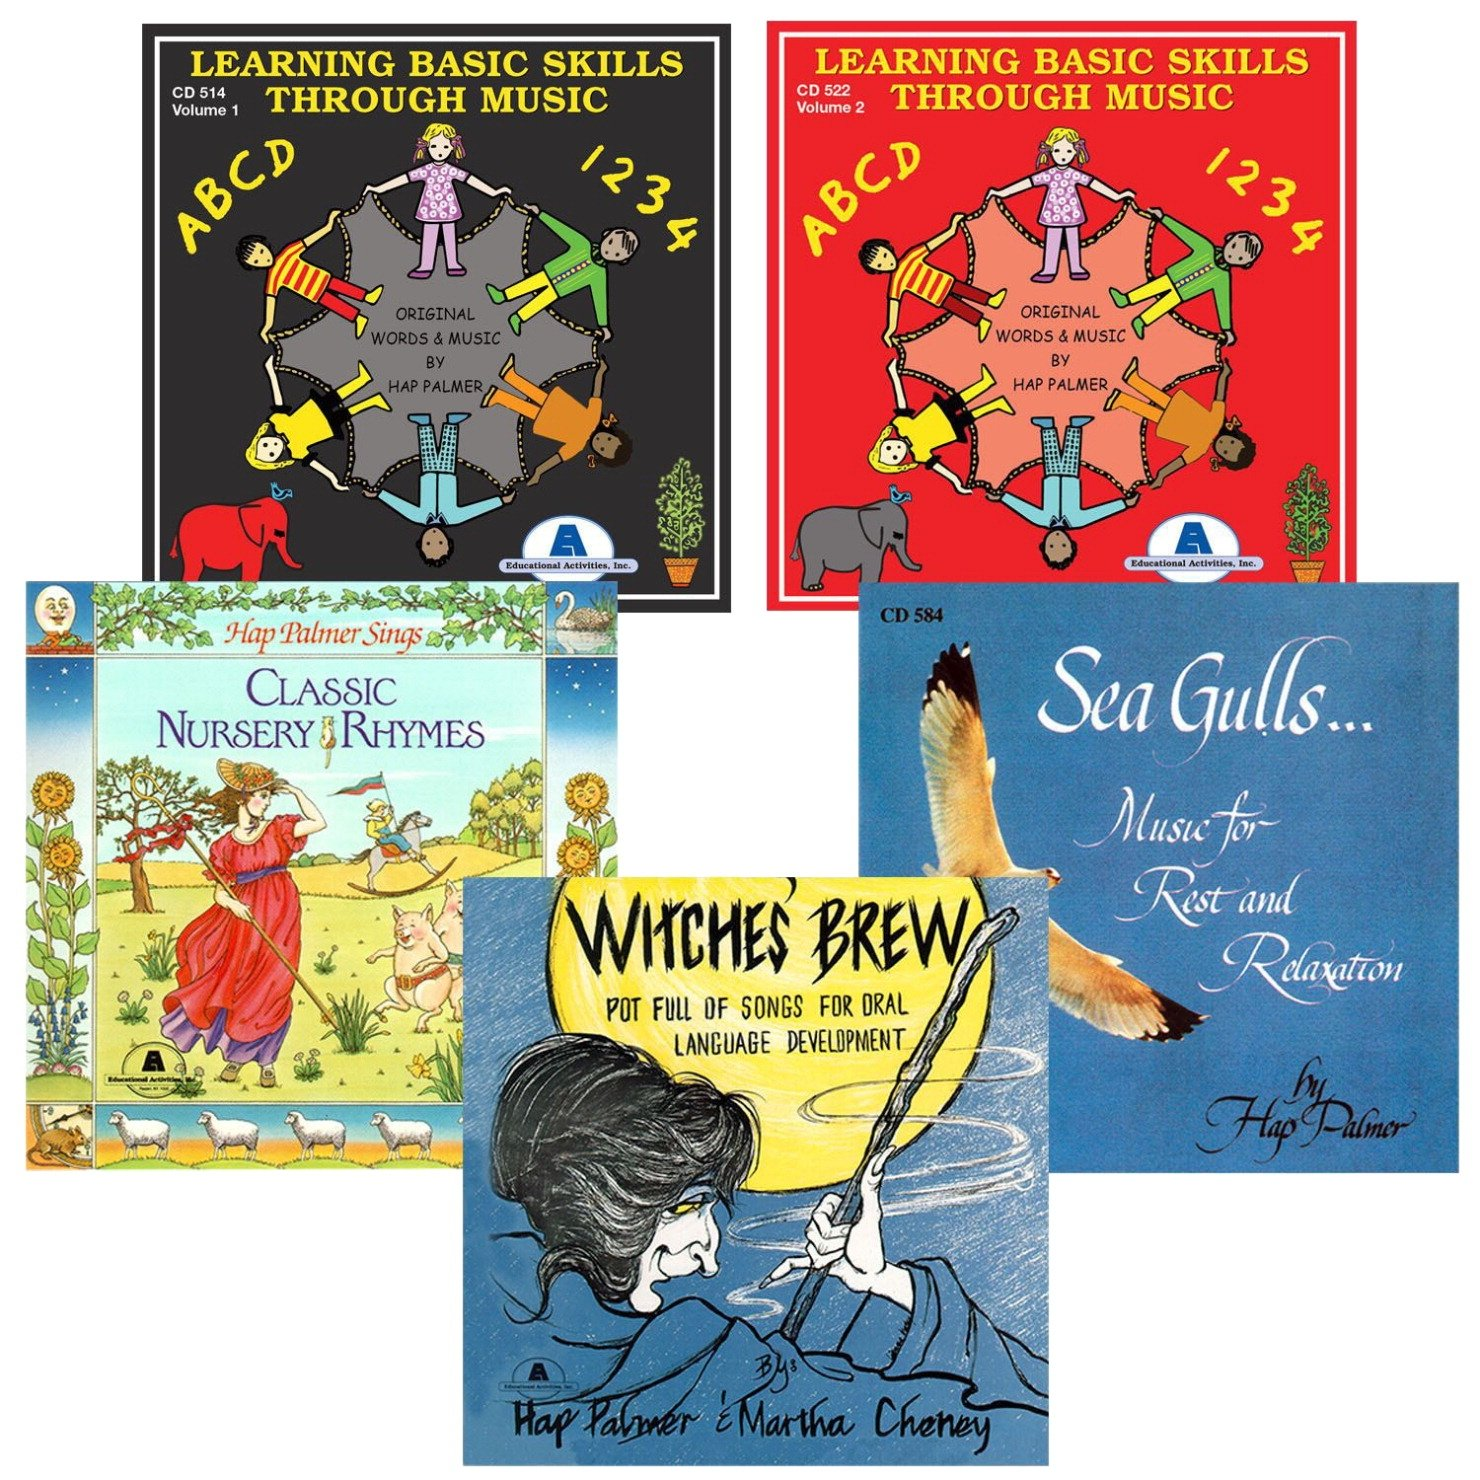 Educational Activities Best Loved Hap Palmer Cd Collection Set 2; Set Of 5 - 1531307 - Toys Books & Cds 1531307